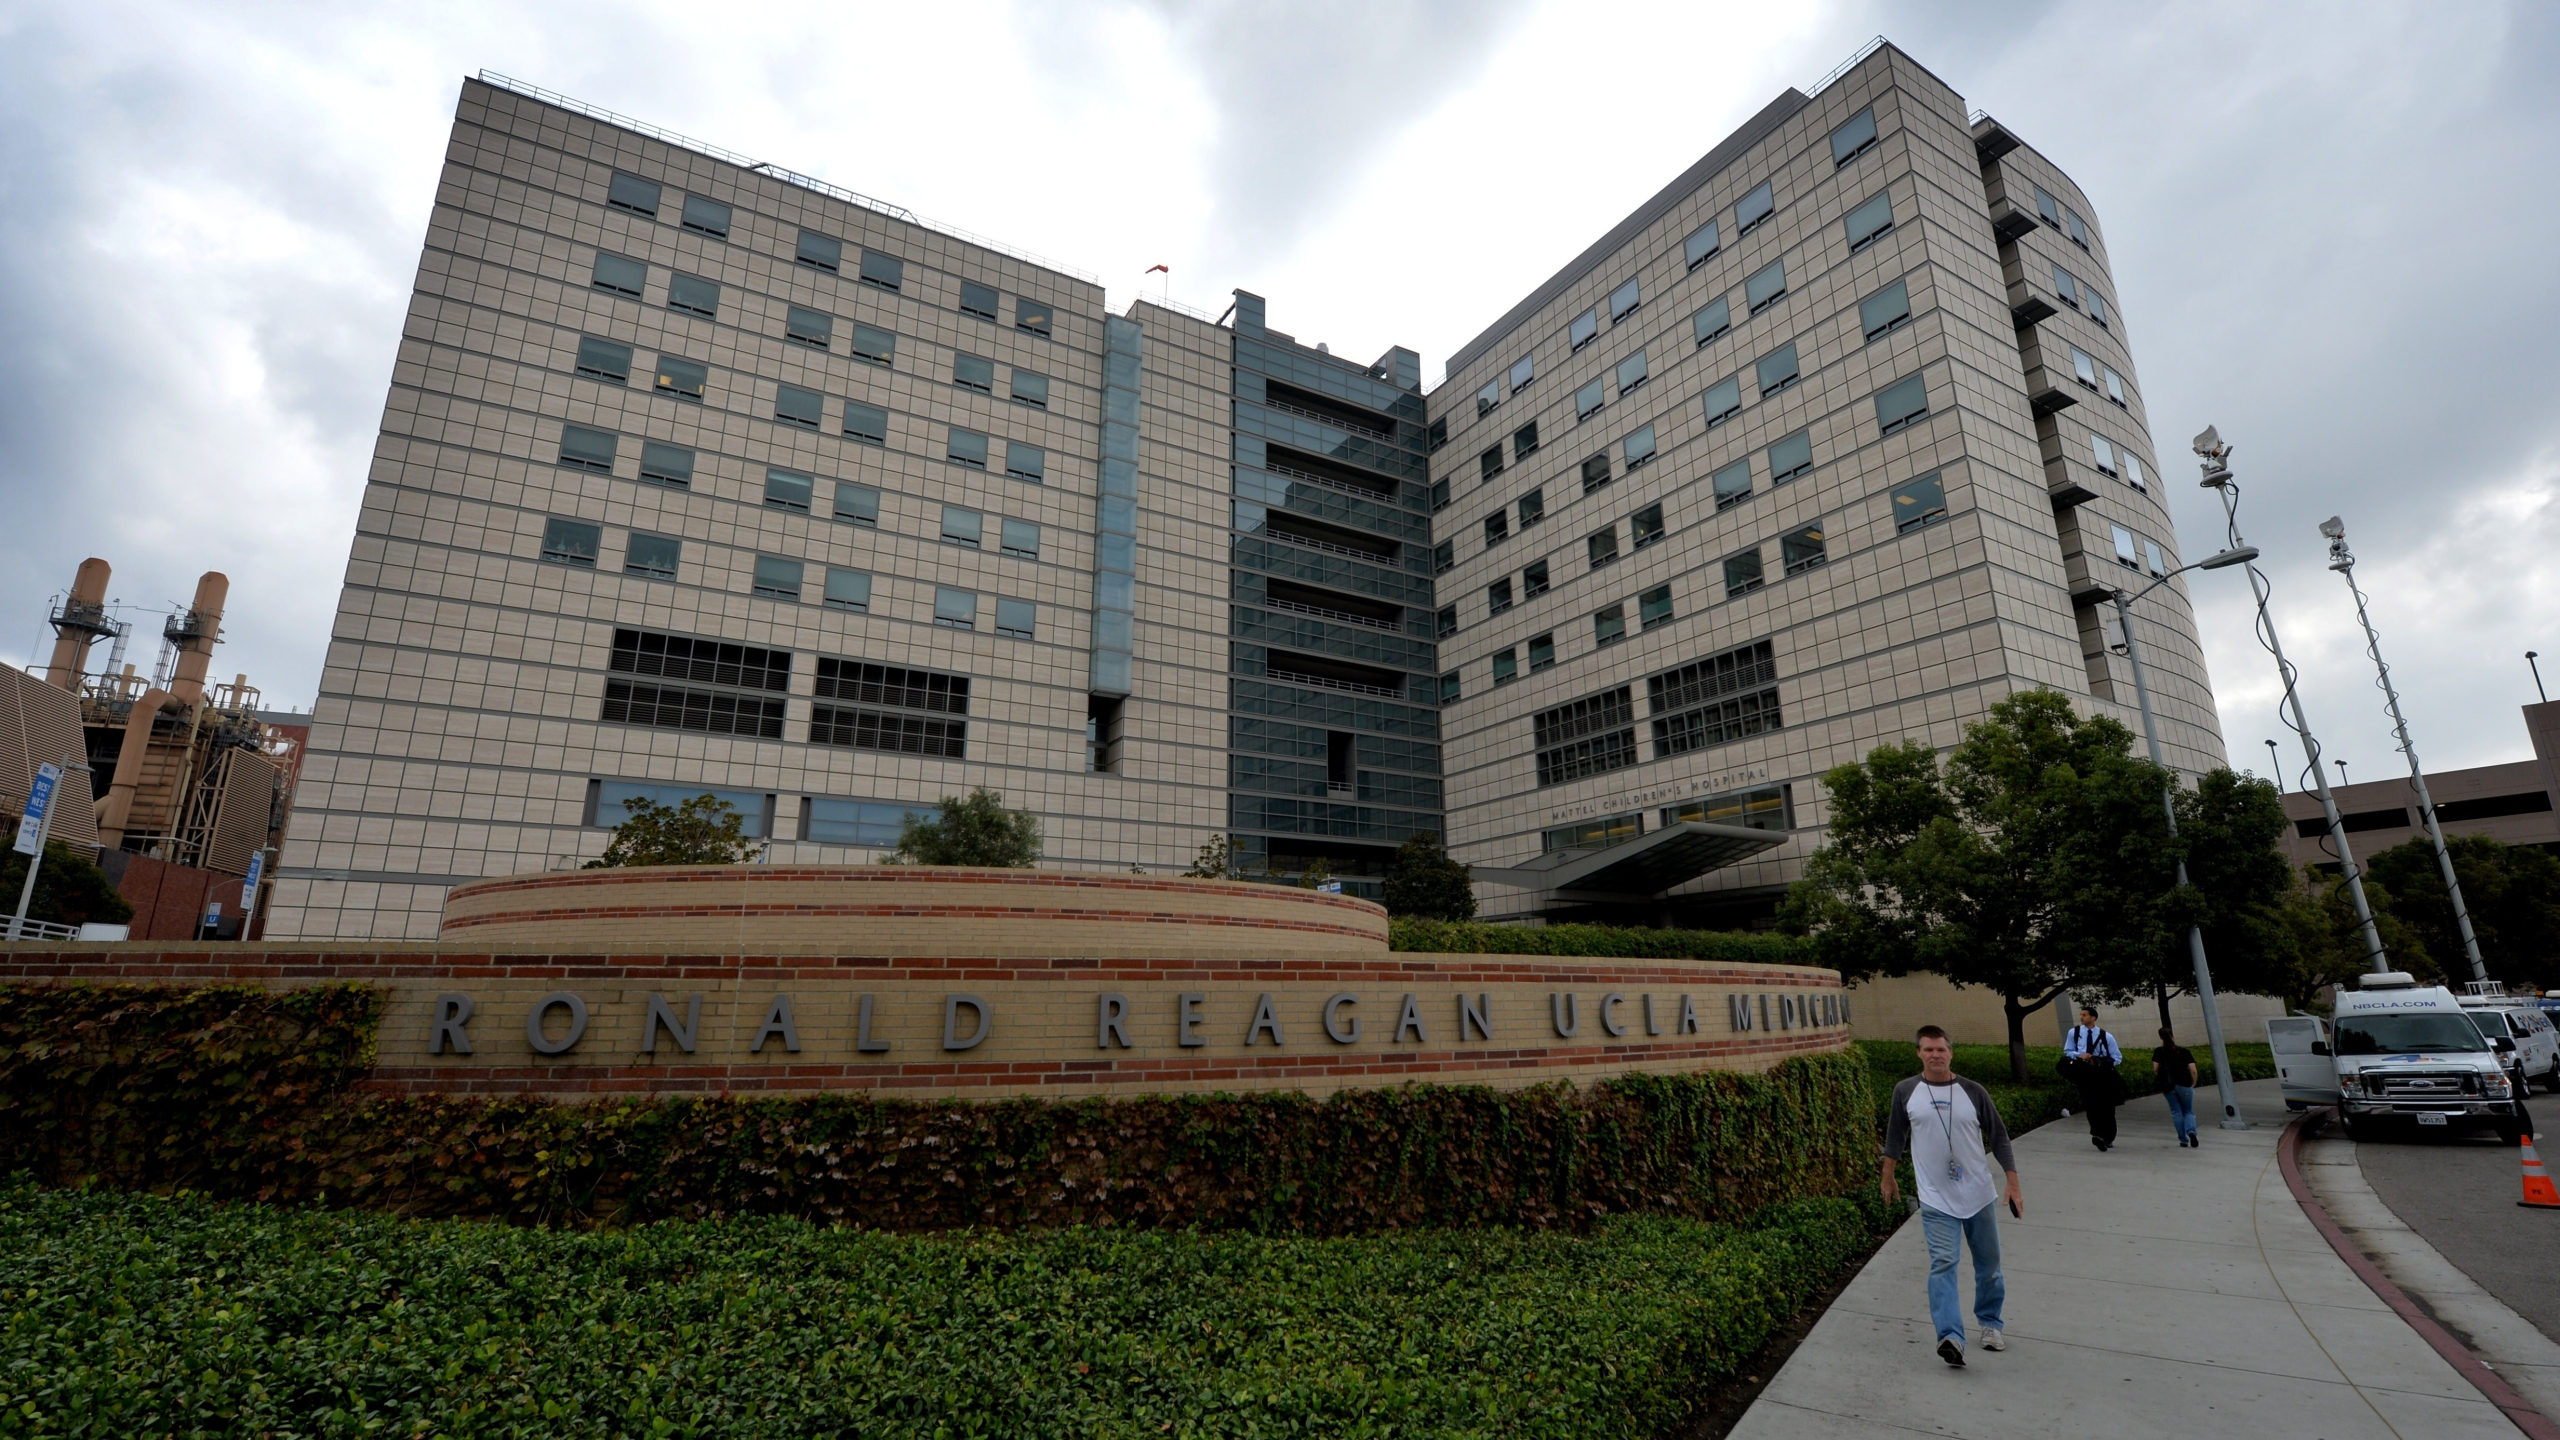 The exterior of the Ronald Reagan UCLA Medical Center is shown on Oct. 17, 2014. (Credit: Mark Ralston / AFP / Getty Images)